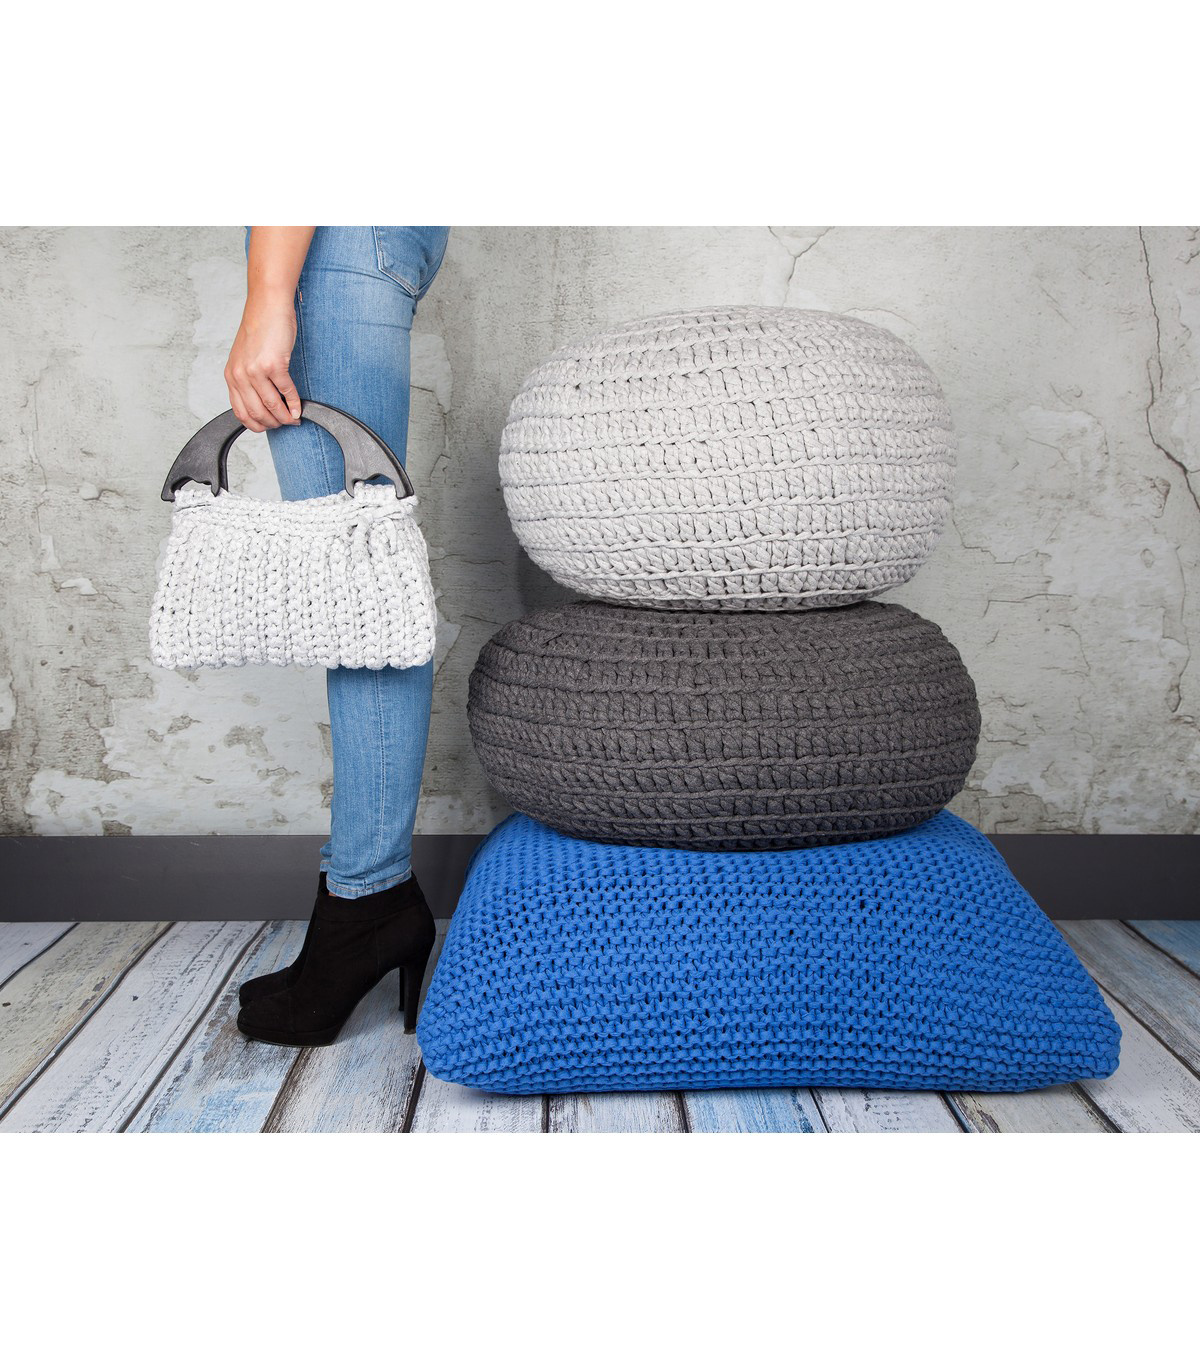 Hoooked Knit & Crochet Pouf Kit with Zpagetti Yarn-Silver Gray